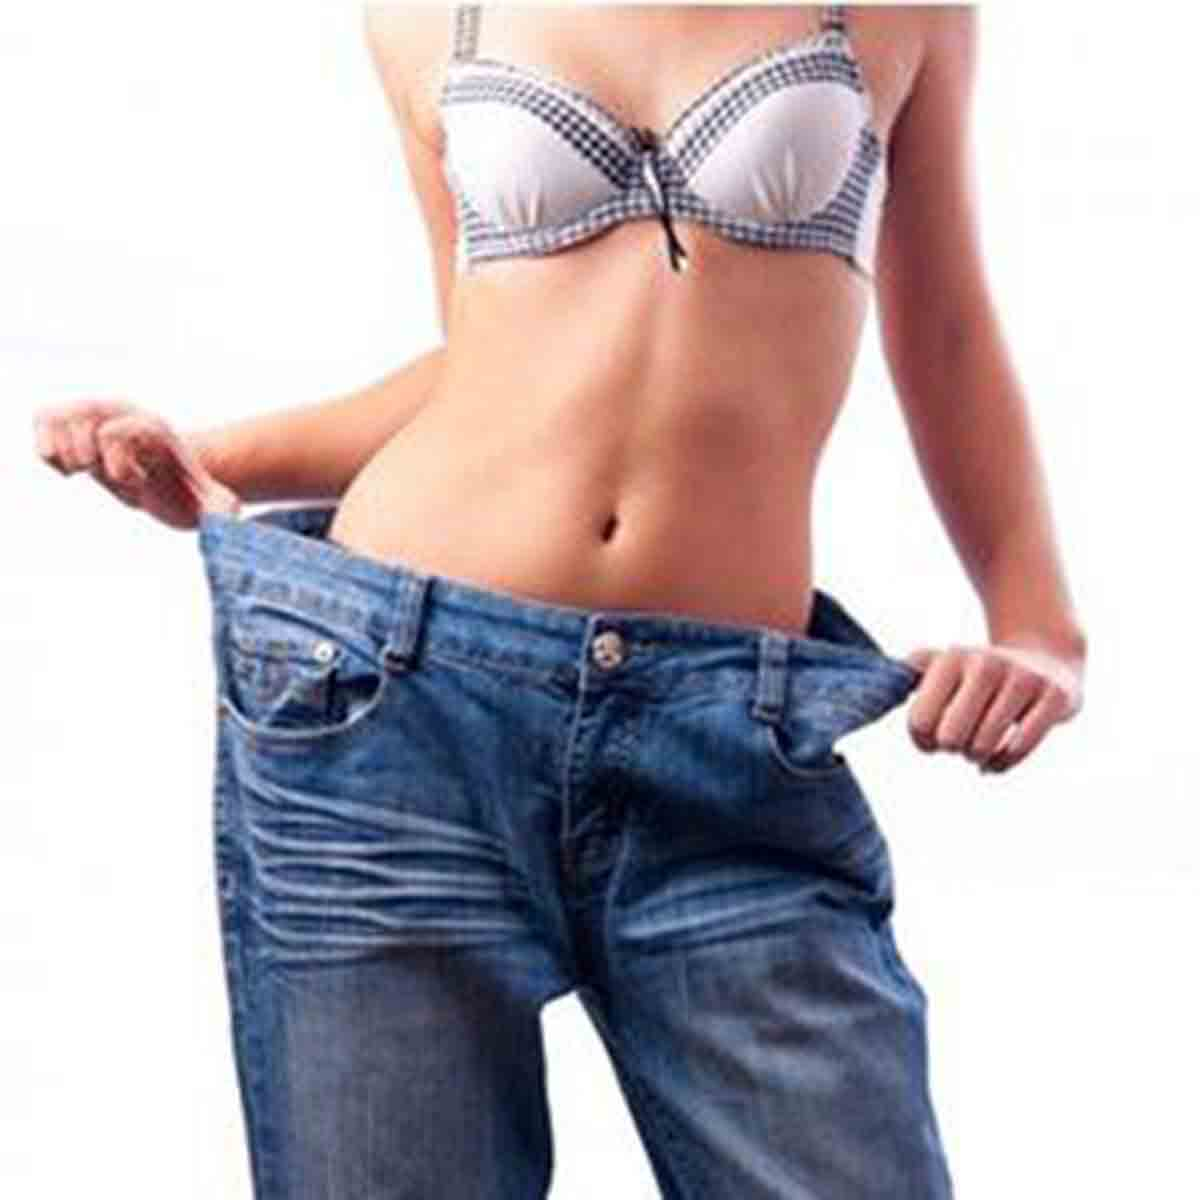 Another Top 5 Weight Loss Pill Myths